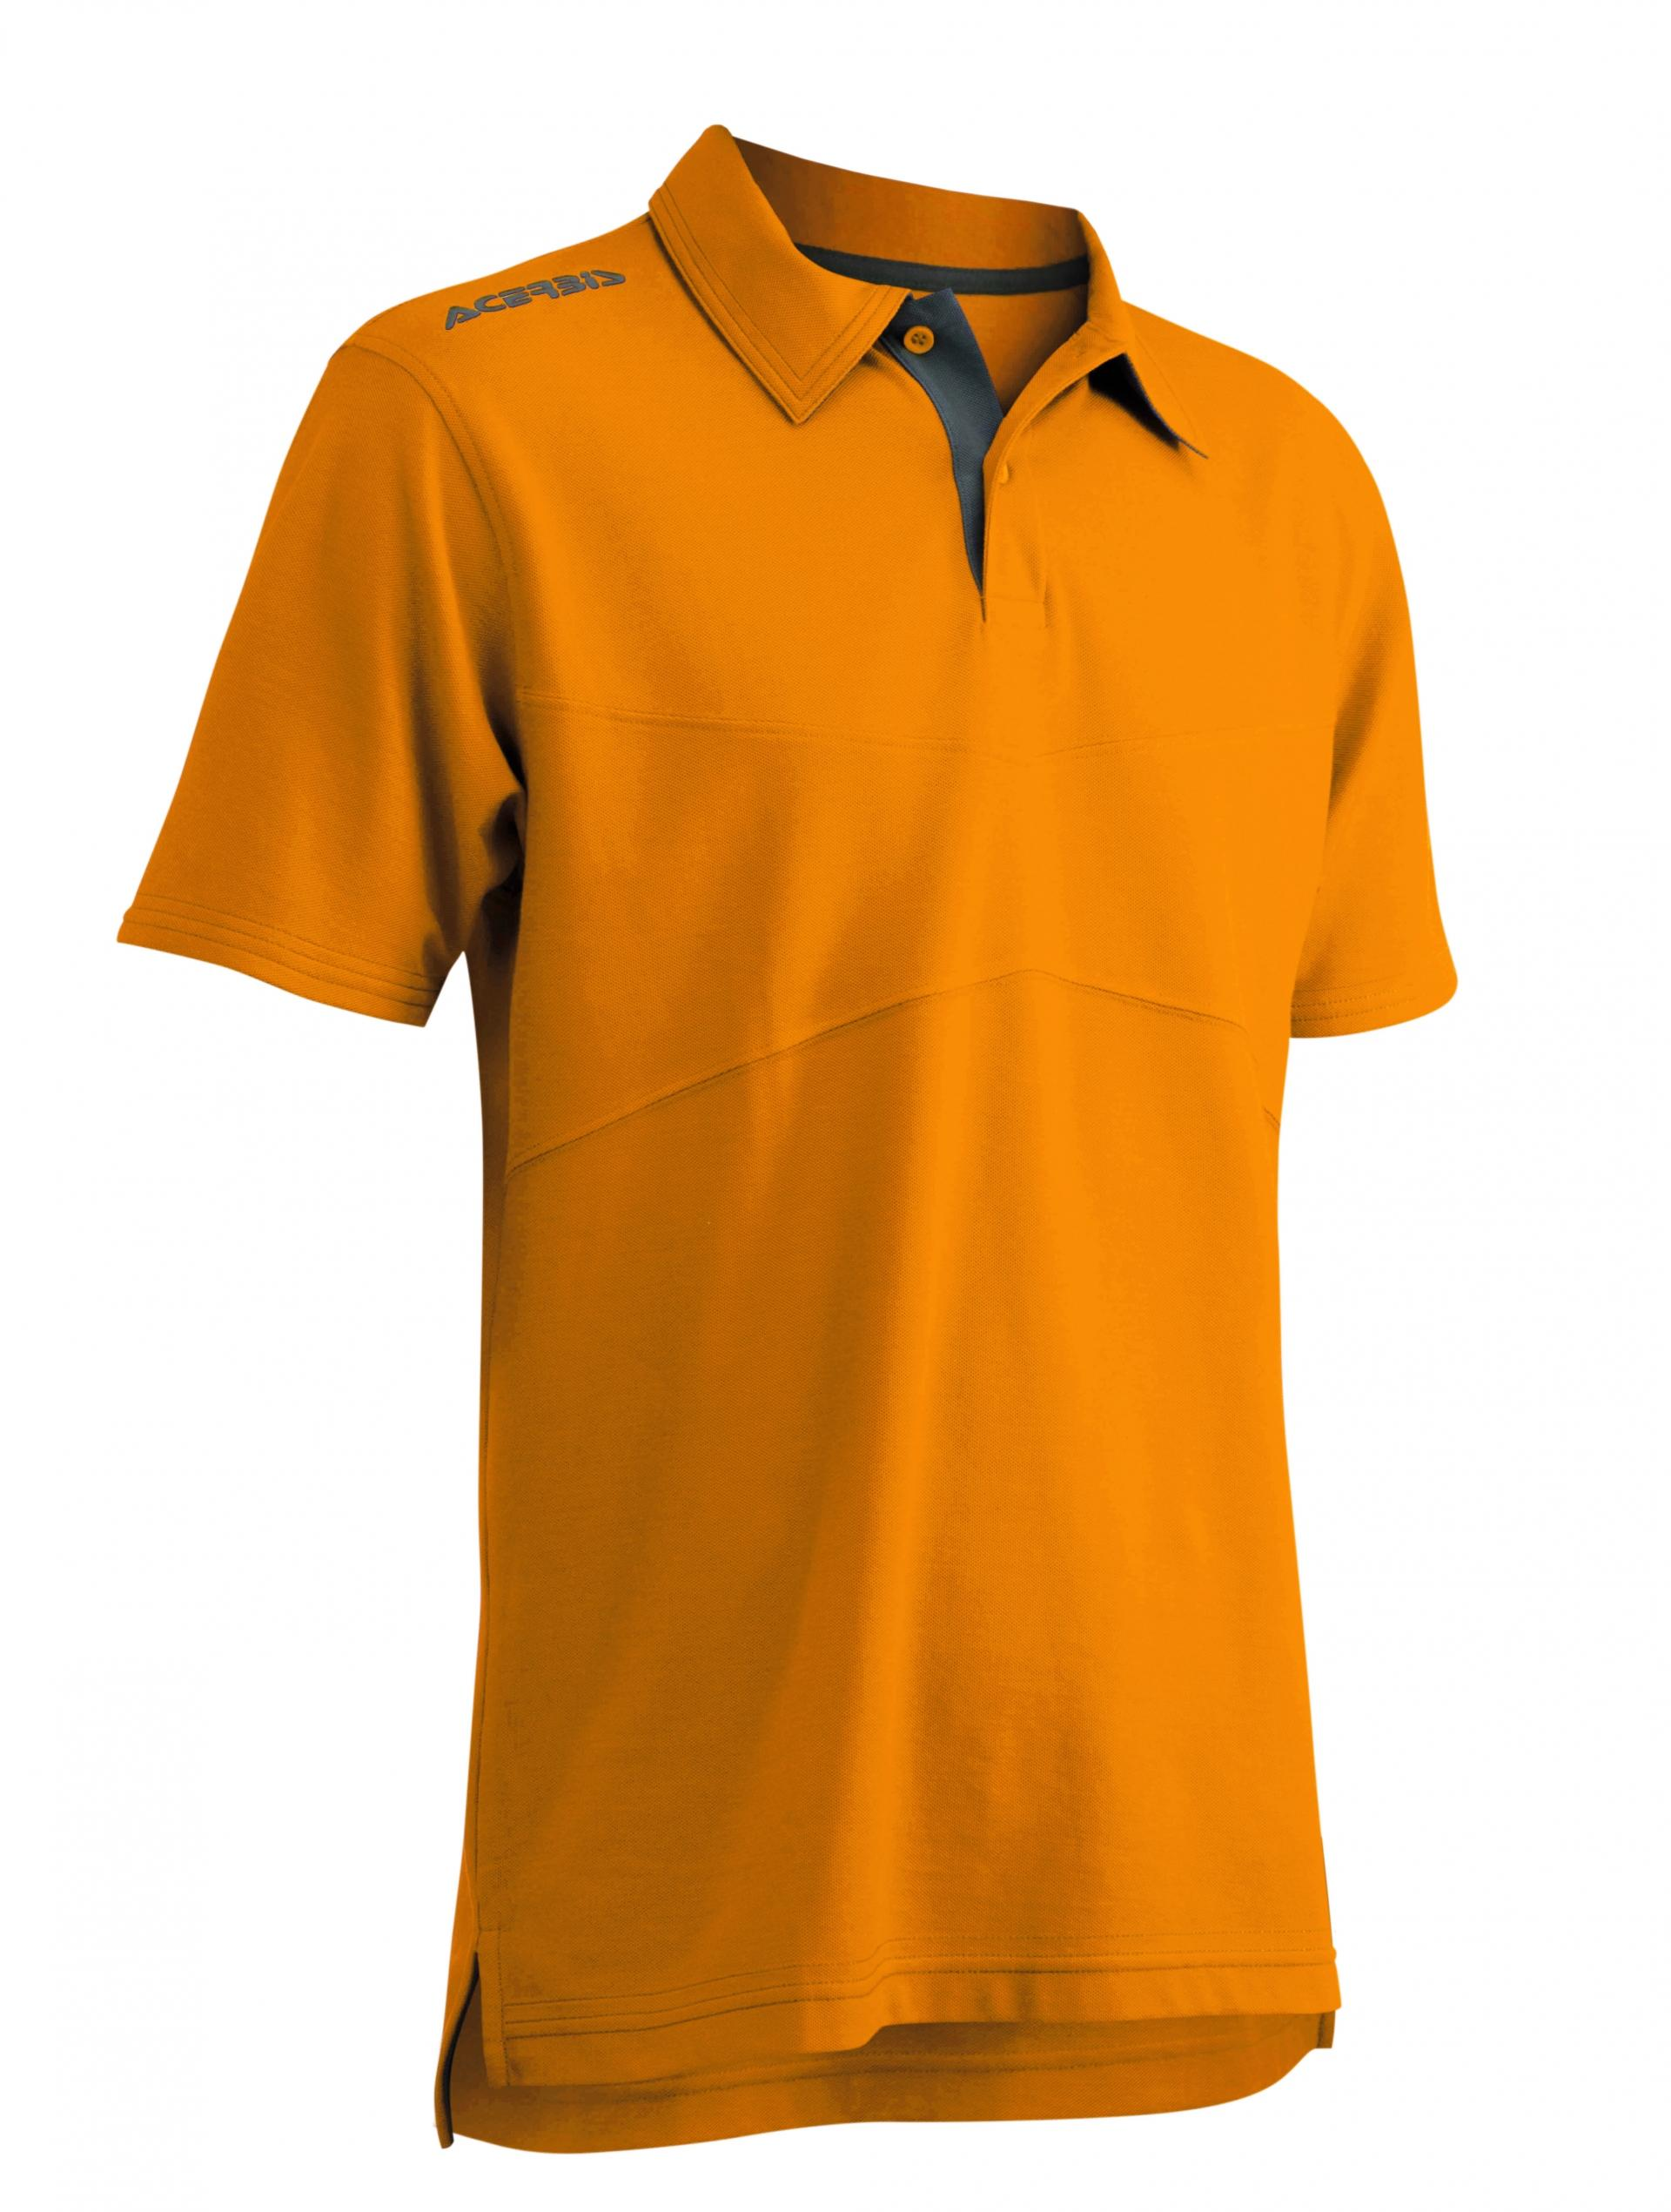 DIADEMA POLO T-SHIRT